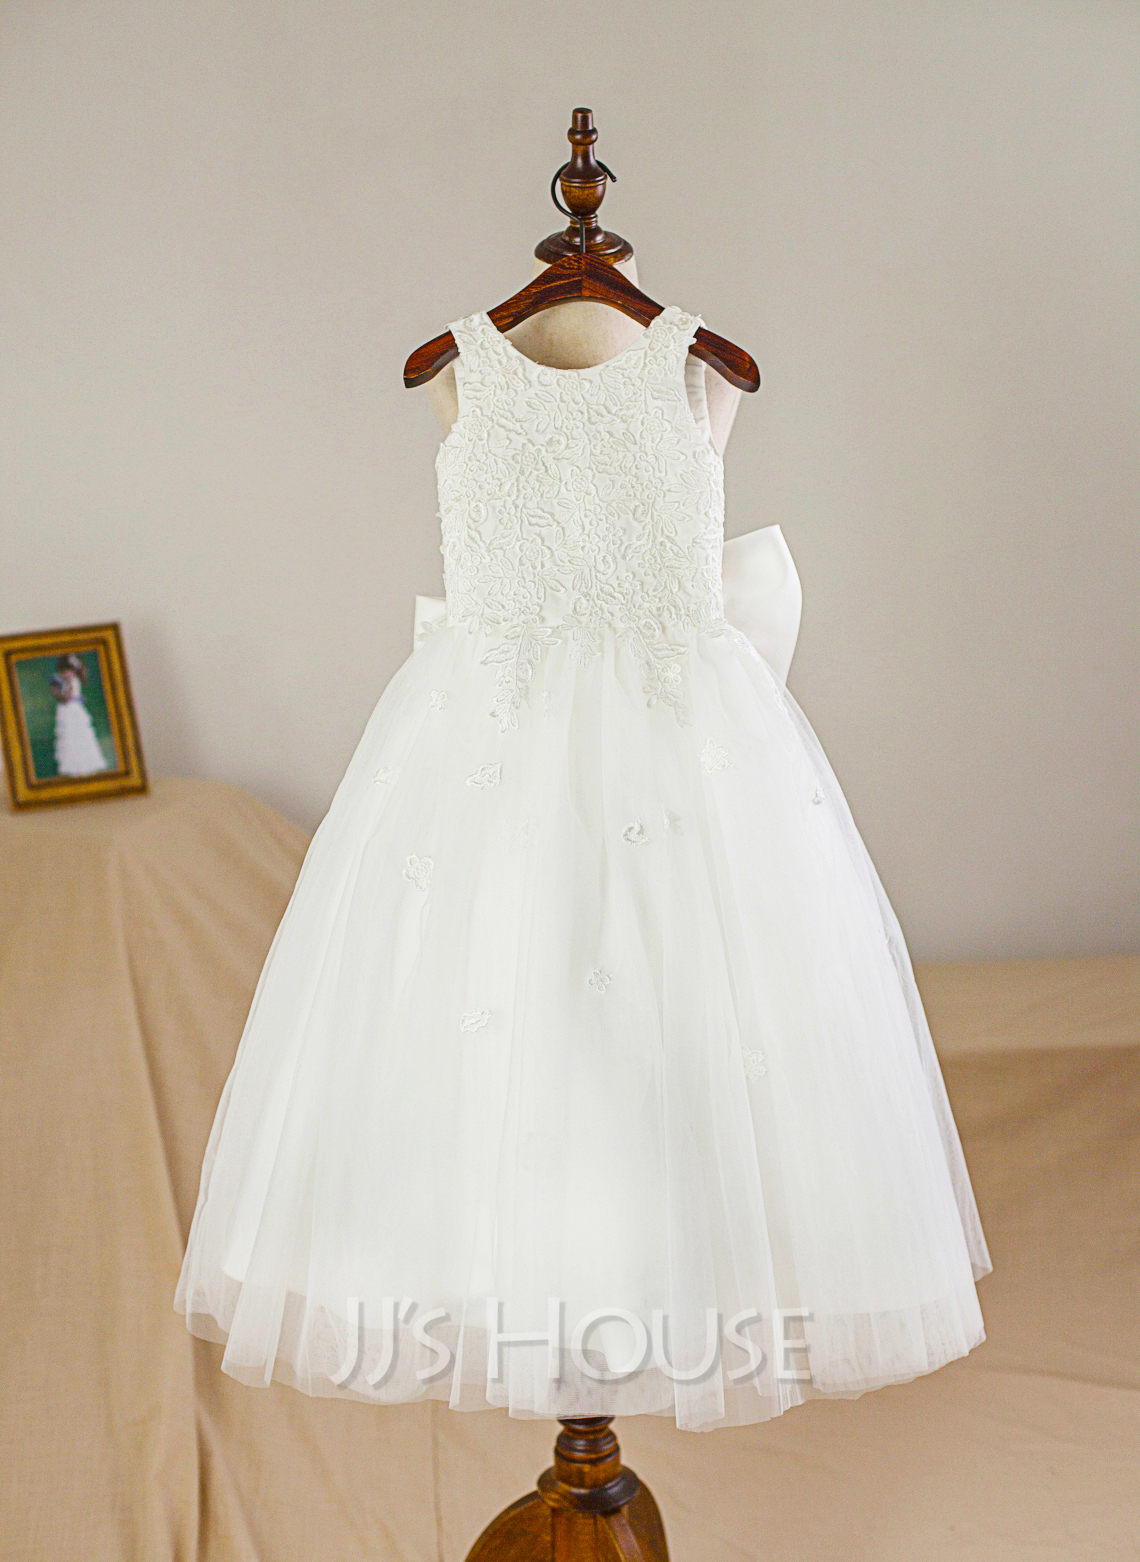 A-Line/Princess Scoop Neck Tea-Length Tulle Junior Bridesmaid Dress With Bow(s)